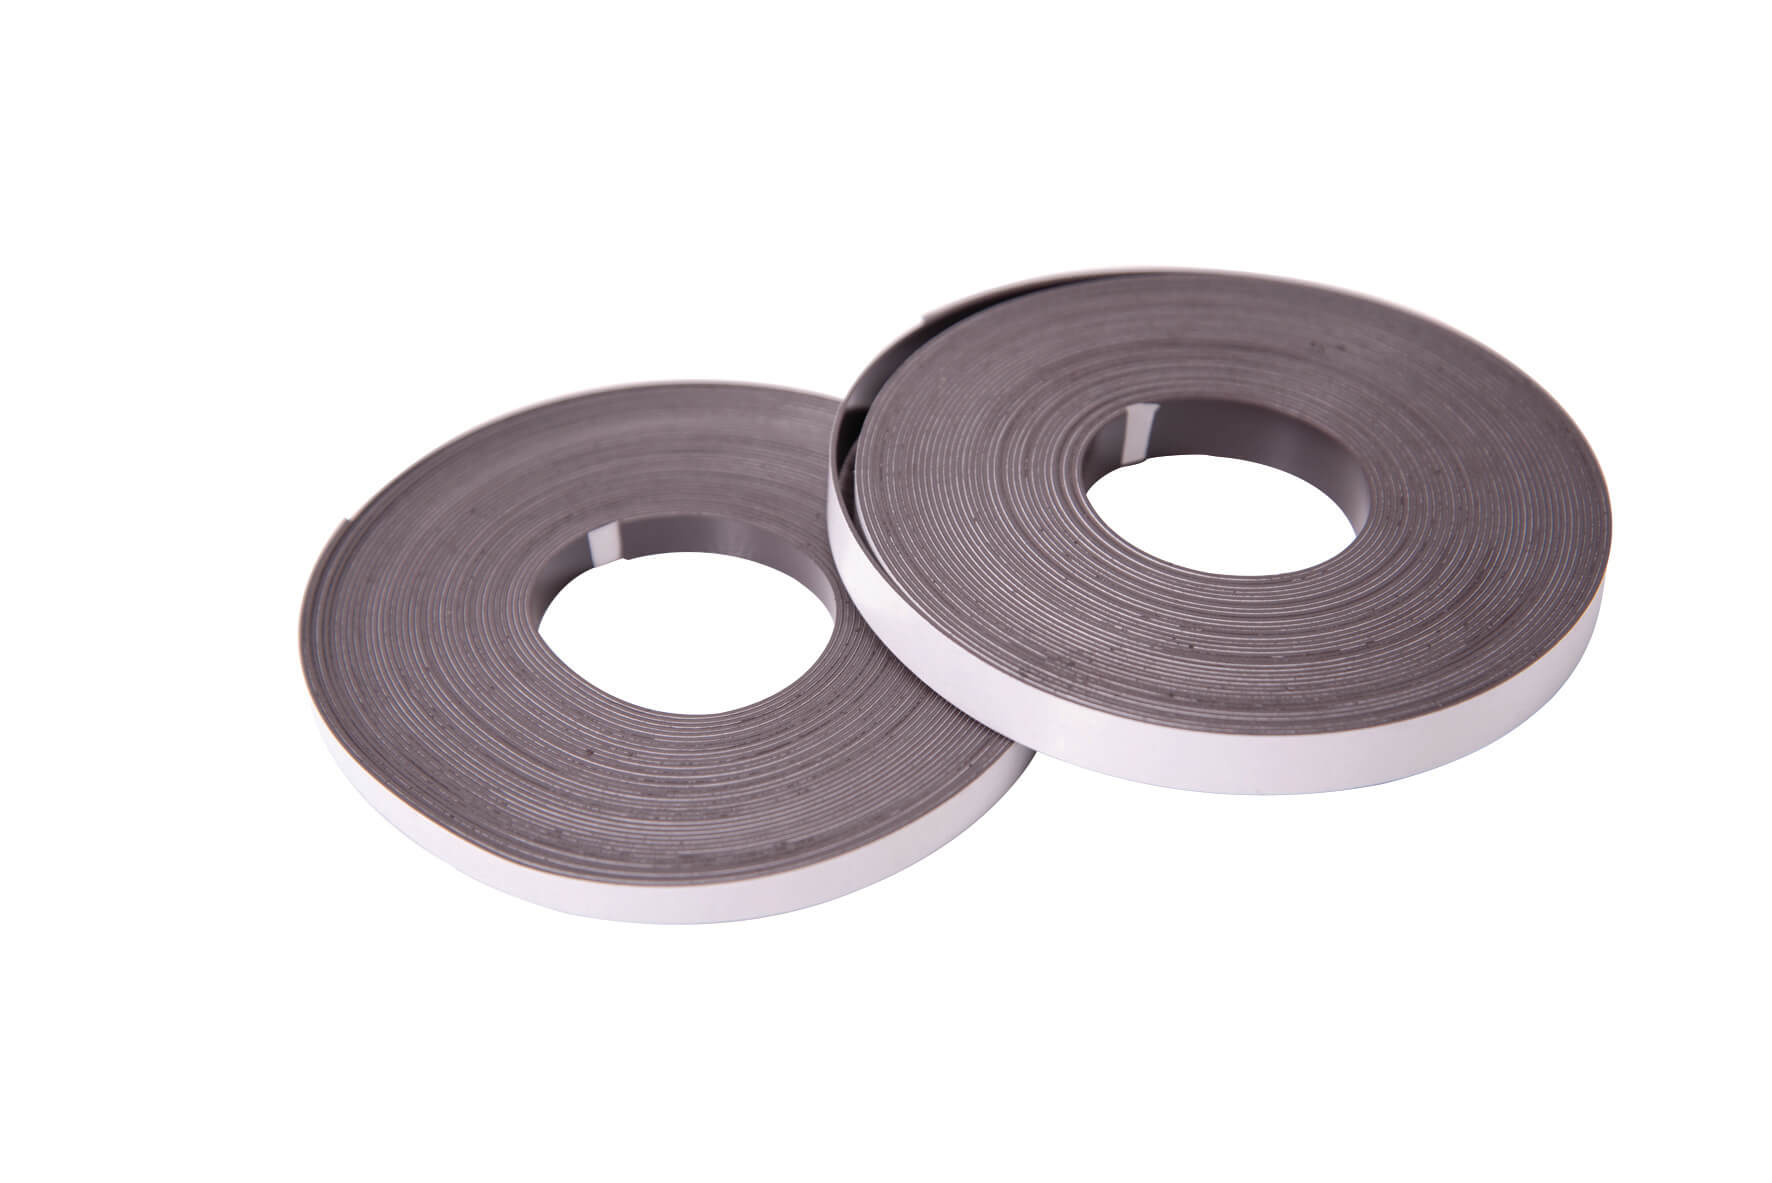 Magnetic Tape Adhesive Backed 0.8x8mm 10m